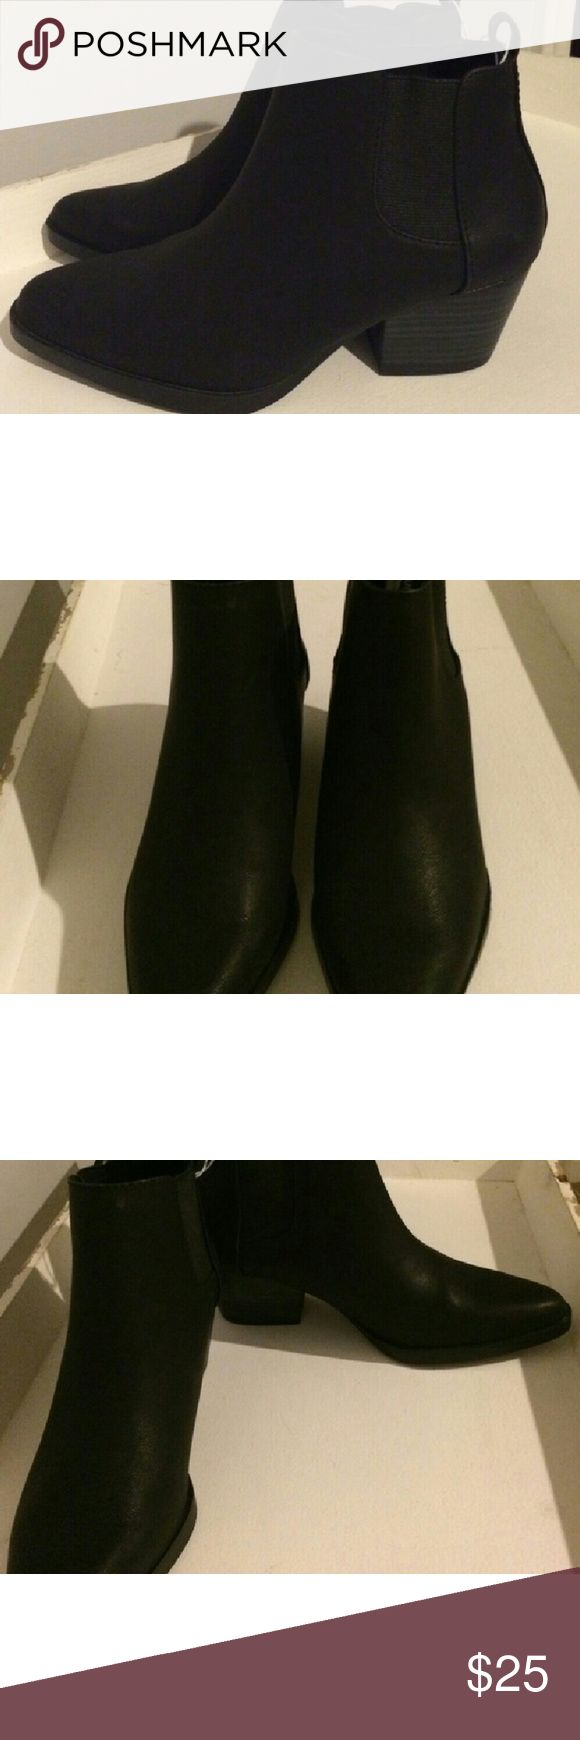 Black Faux Leather Short Ankle Boot Short ankle boot in faux leather upper in Black Jack. Synthetic rubber sole. Grosgrain tabs at sides for a flexible fit. Cushioned foot bed. Textured soles for traction. Old Navy Shoes Ankle Boots & Booties